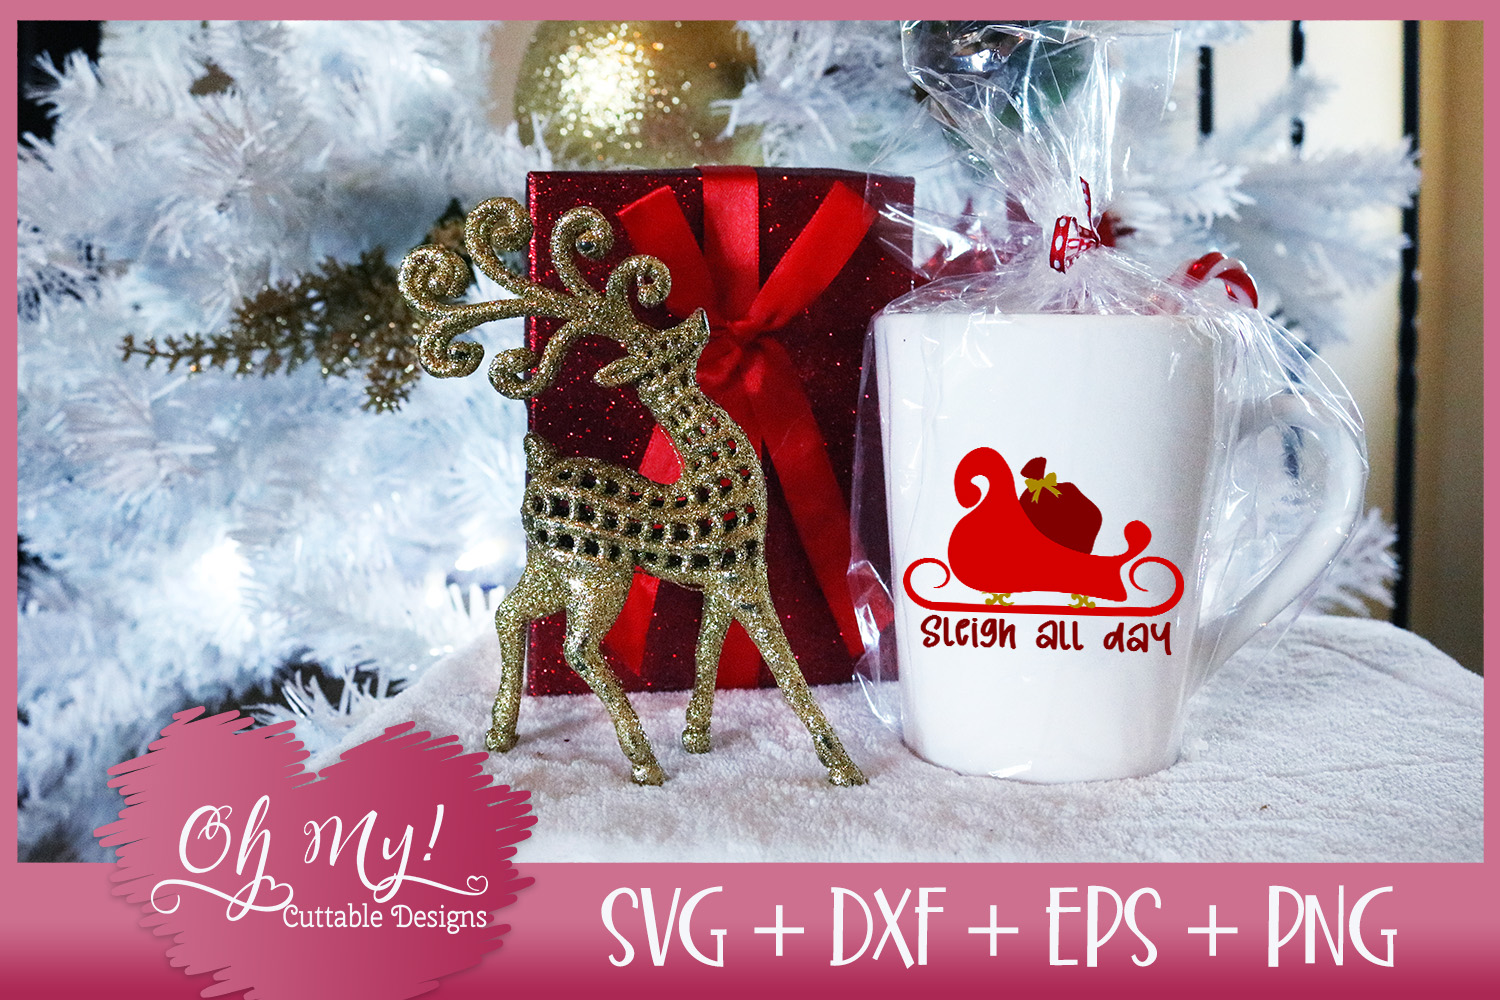 Sleigh All Day - SVG DXF EPS PNG Cutting File example image 5